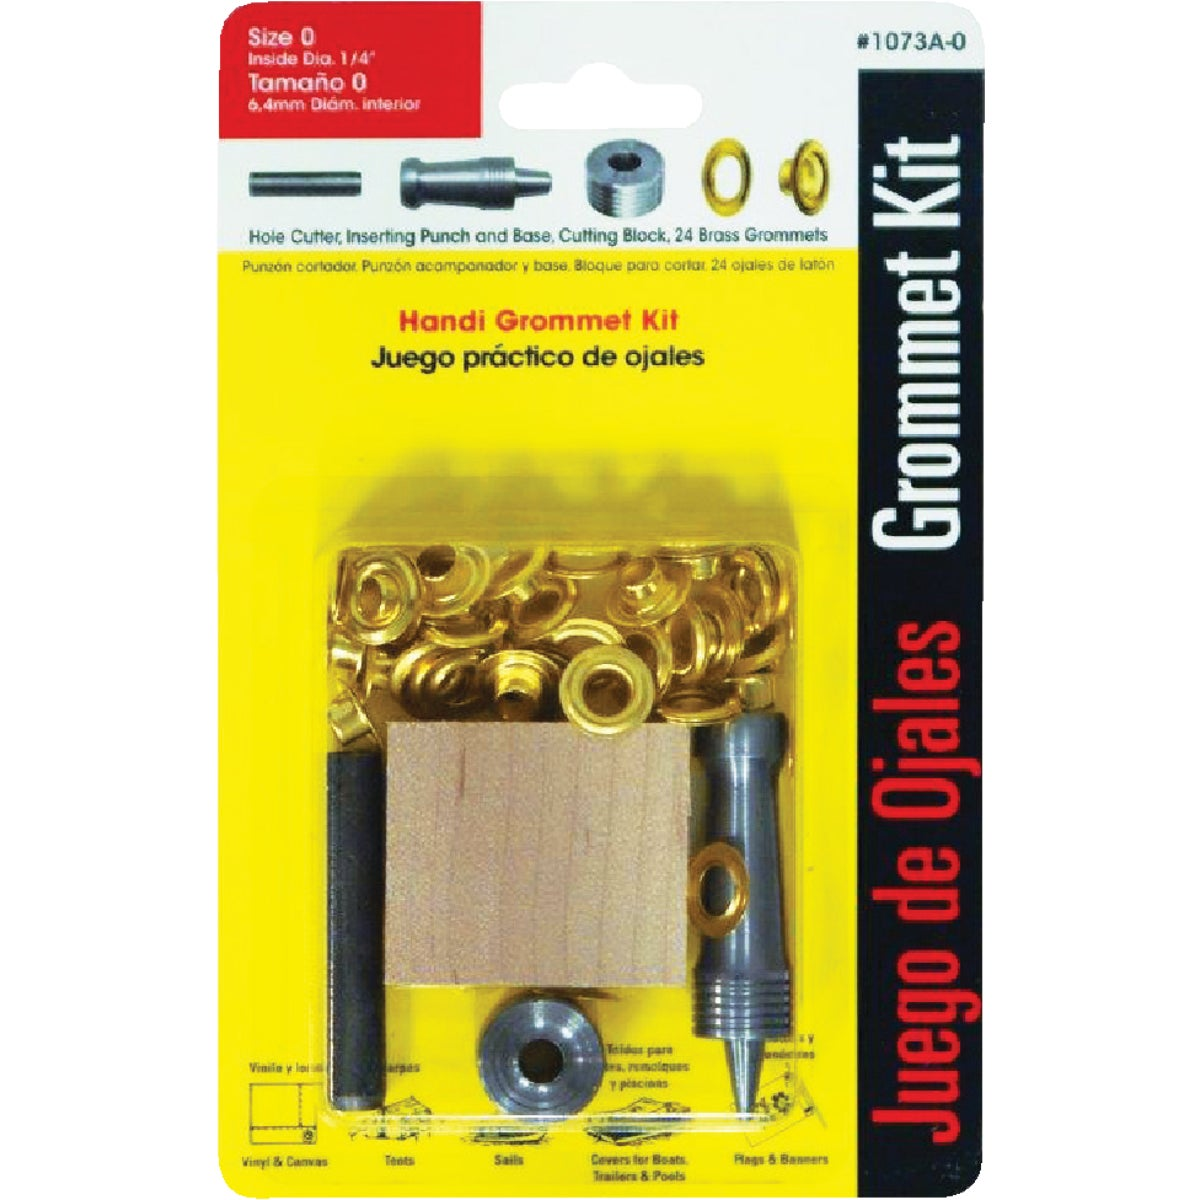 "1/4"" HANDI GROMMET KIT - 1073A-0 by Lord & Hodge Inc"